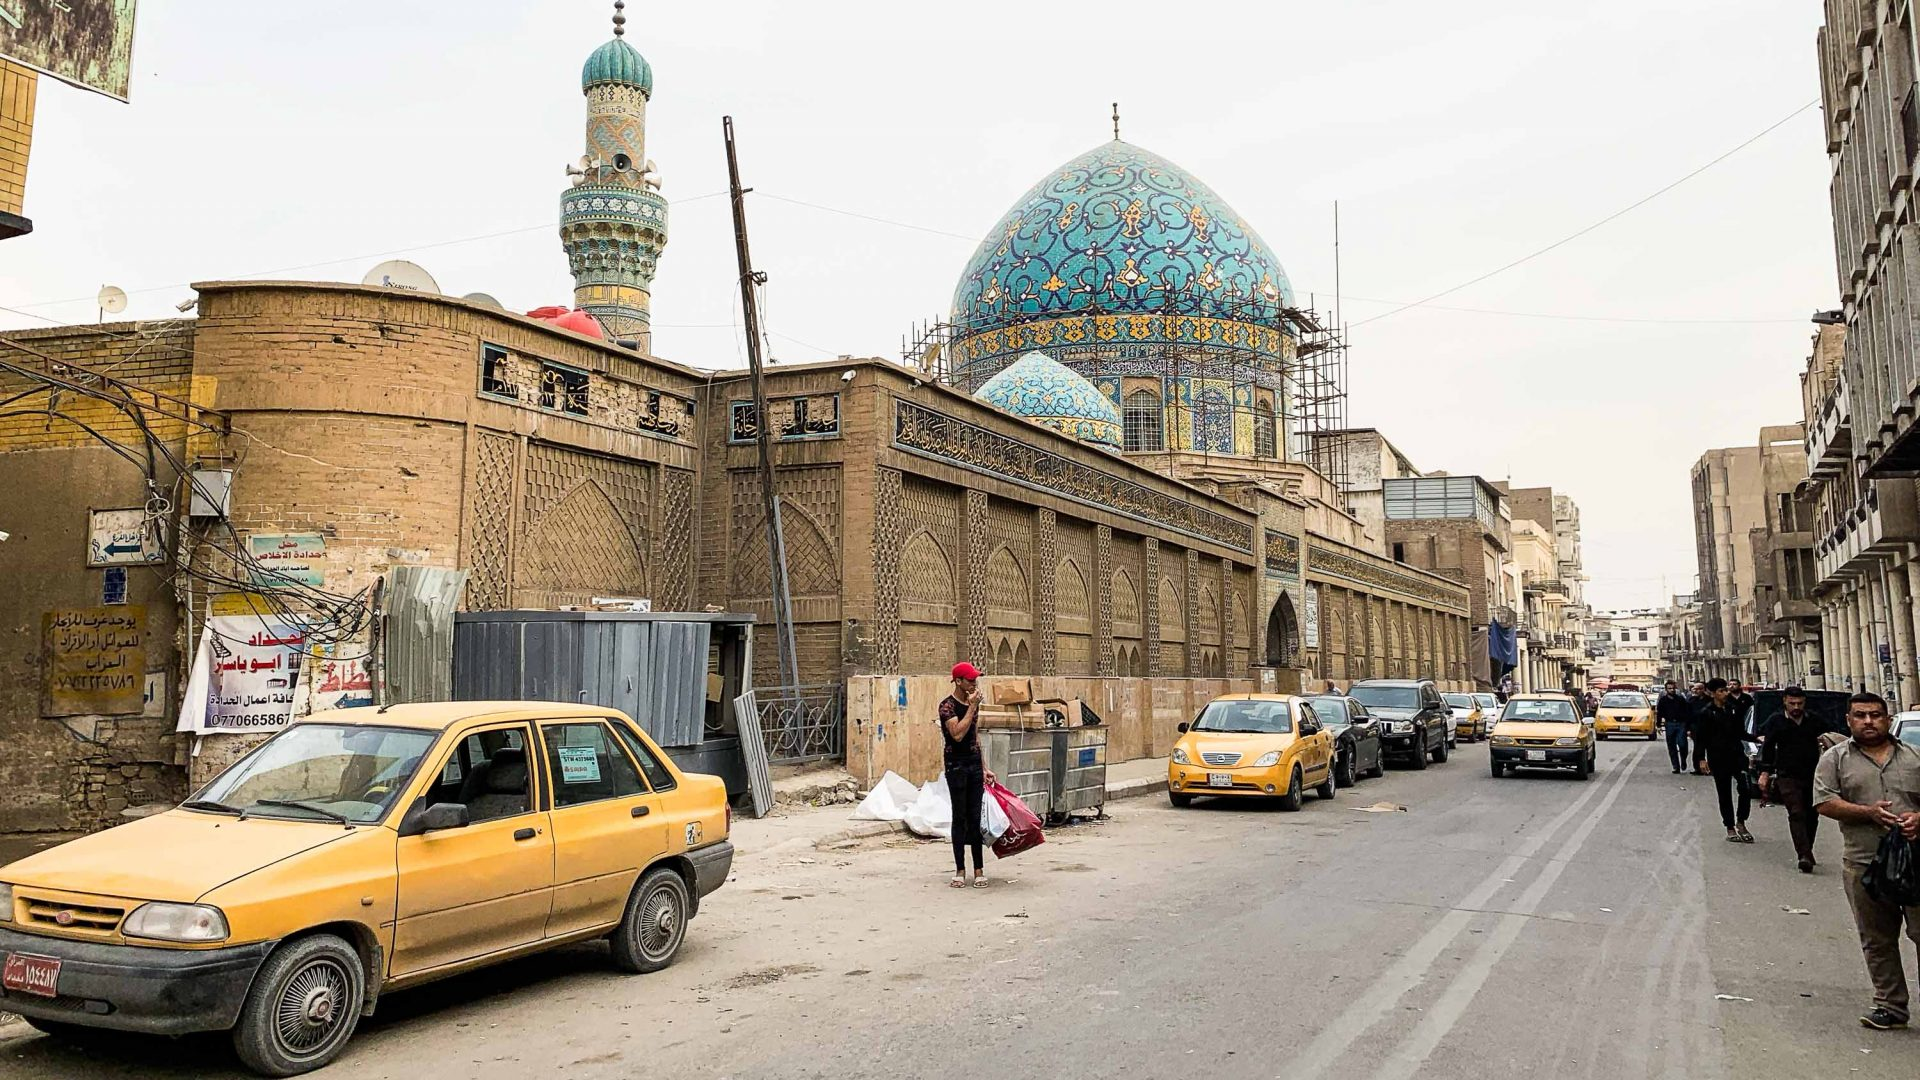 Baghdad 2019: A new era for a much-troubled destination?